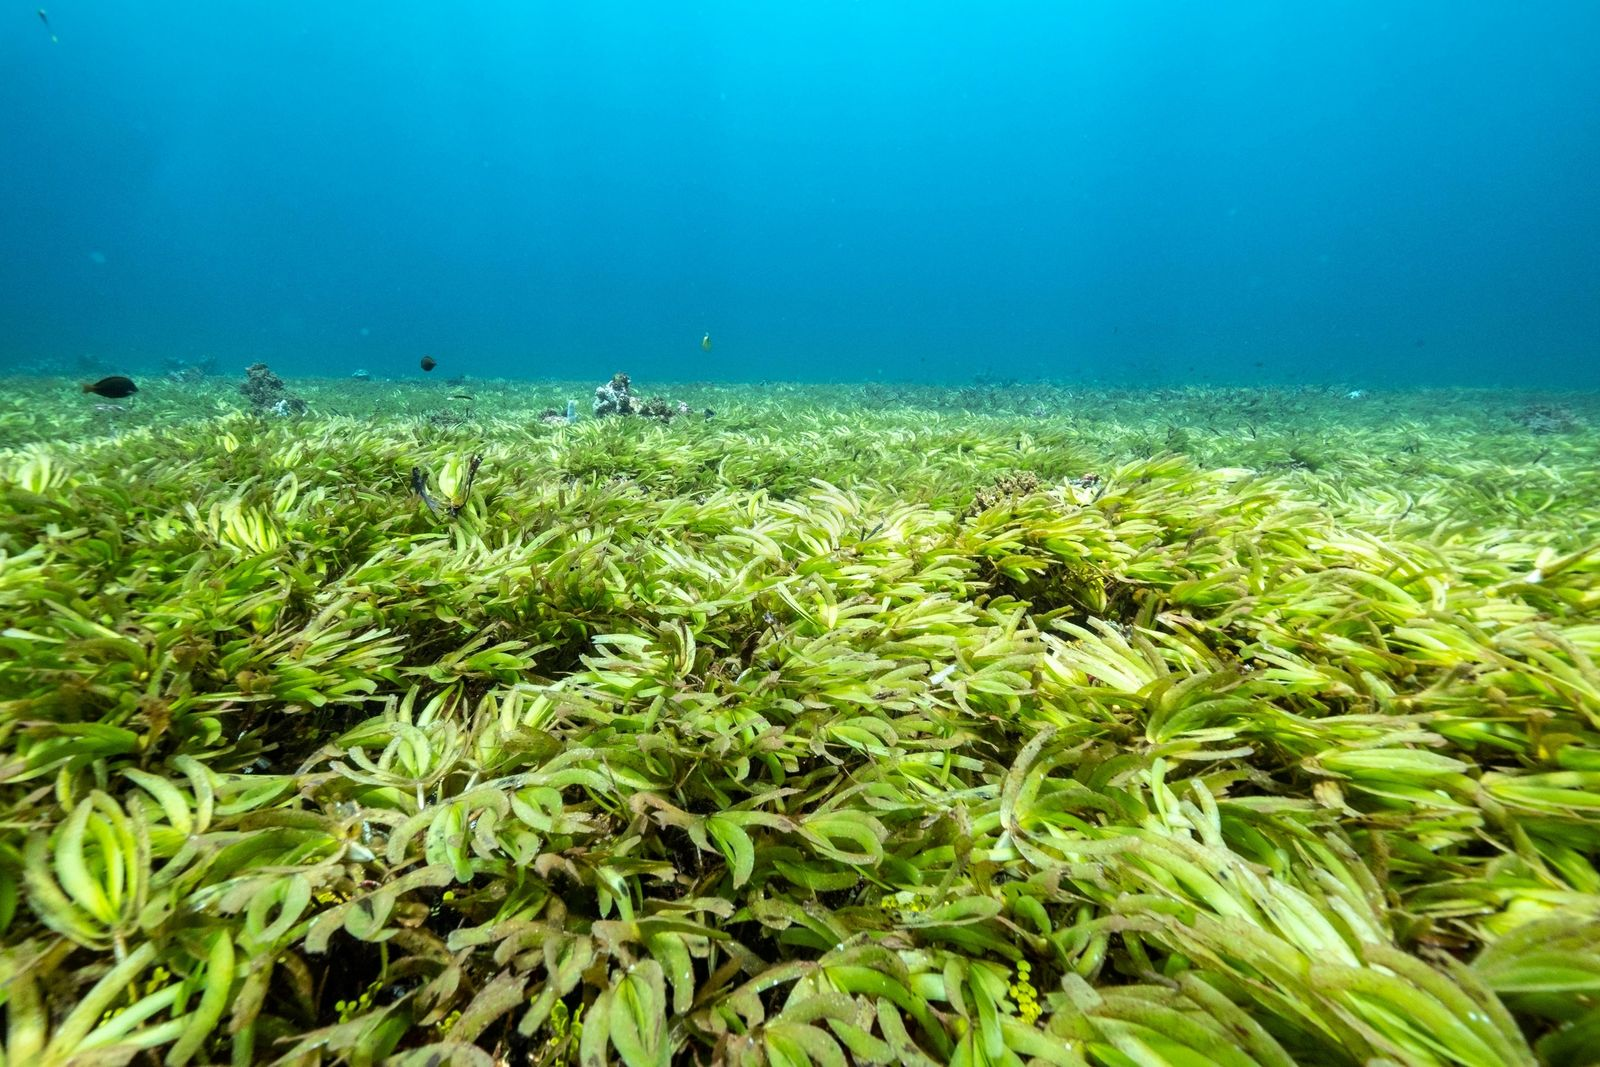 Seagrass are seen in the Indian Ocean above the world's largest seagrass meadow at the Saya de Malha Bank